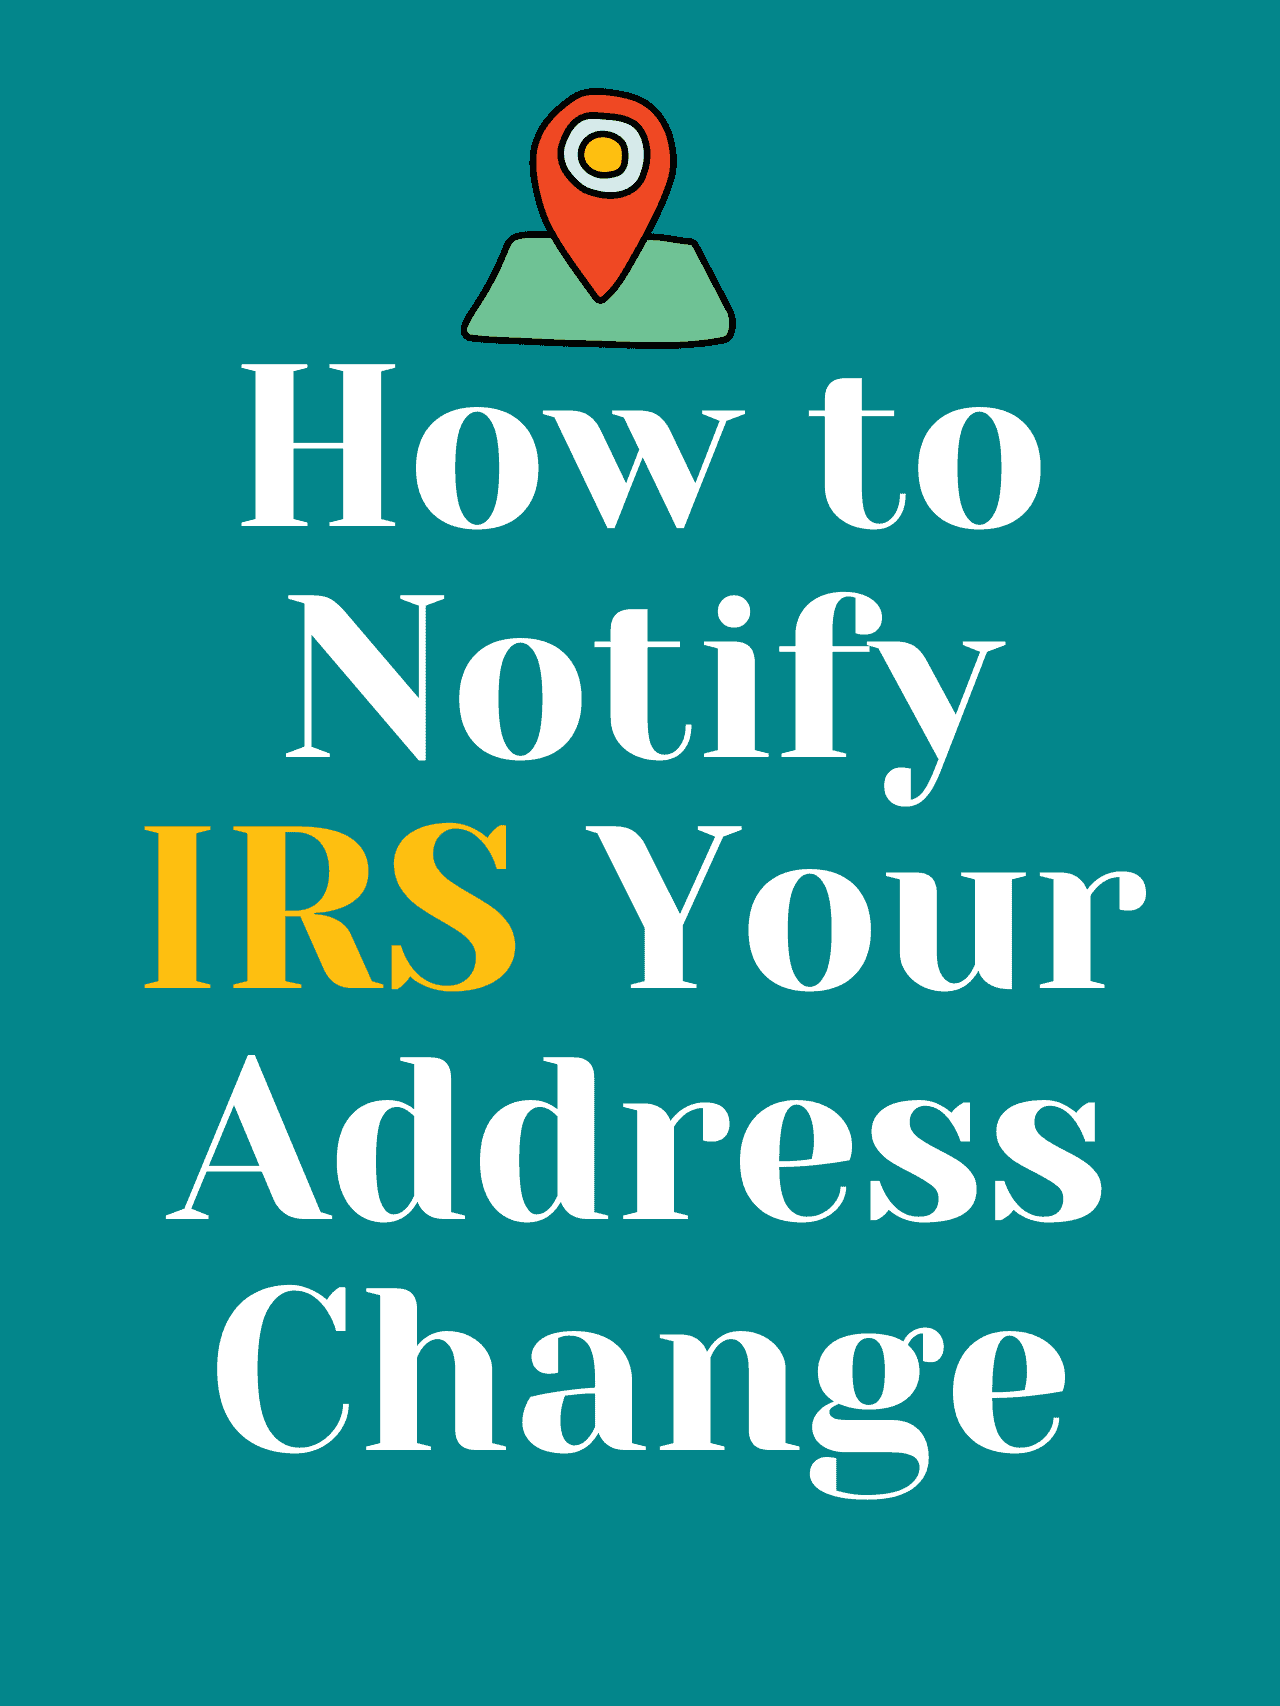 How to Notify IRS Your Address Change